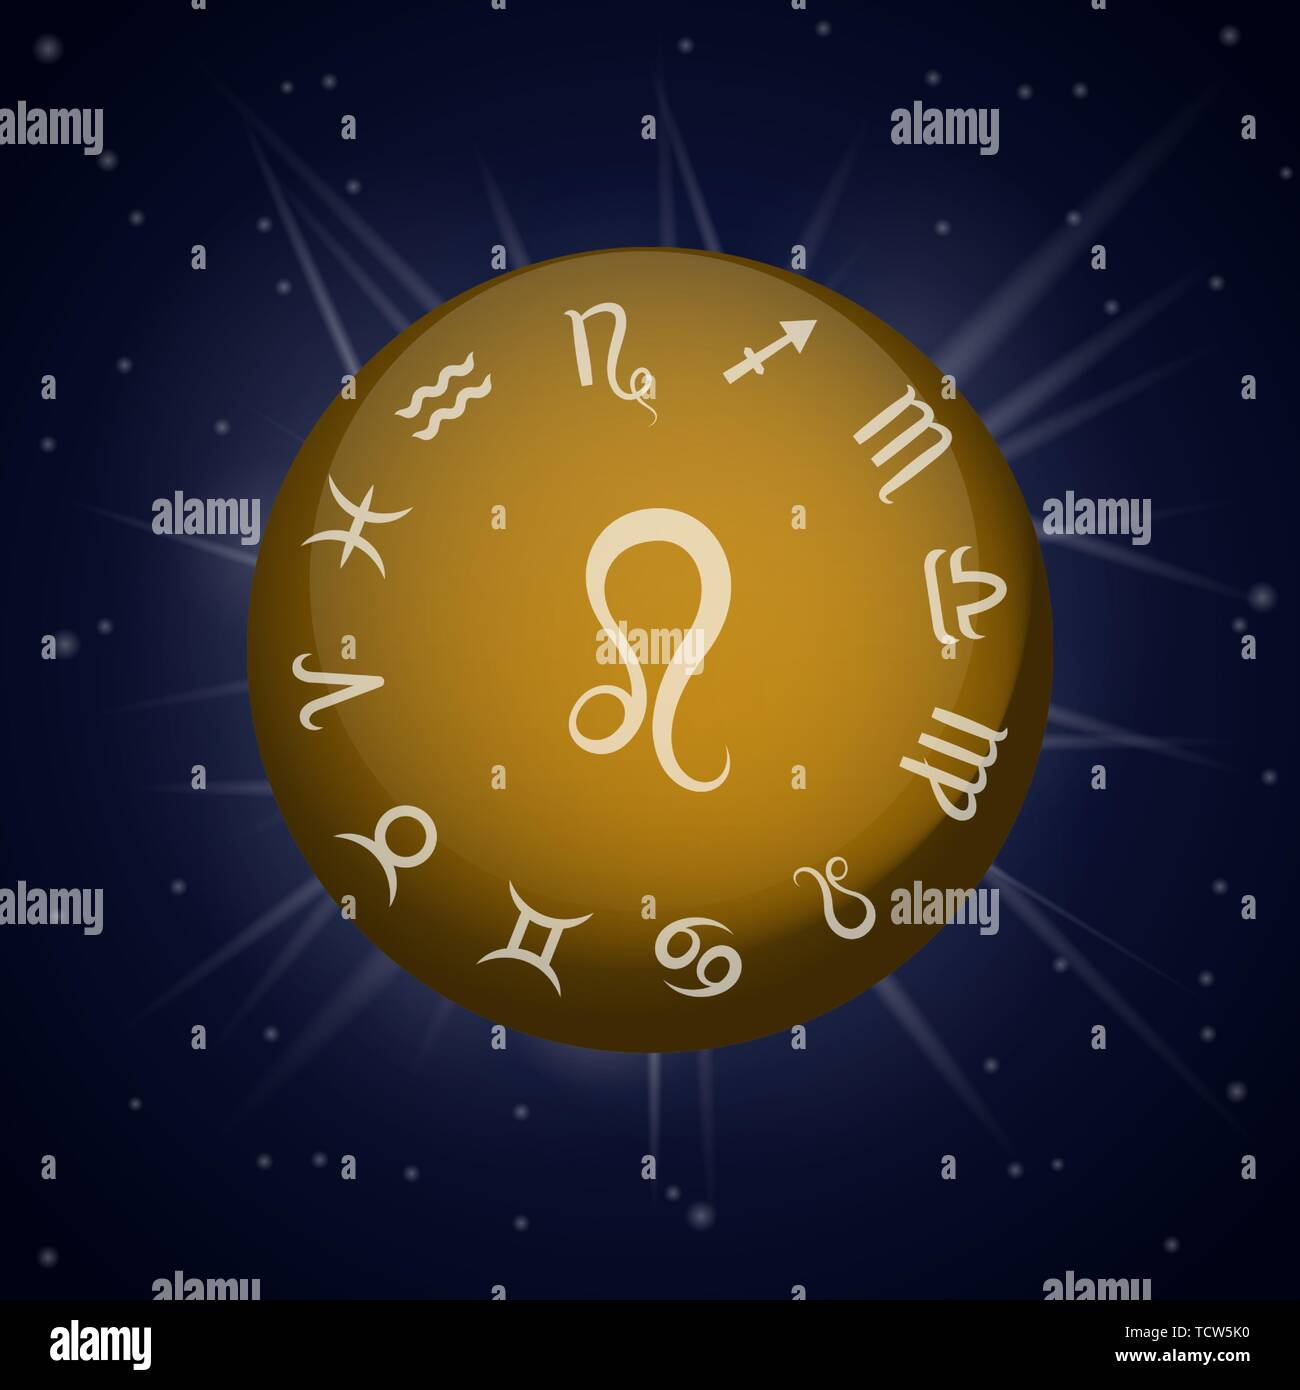 Zodiac Fire Sign Stock Photos & Zodiac Fire Sign Stock Images - Alamy